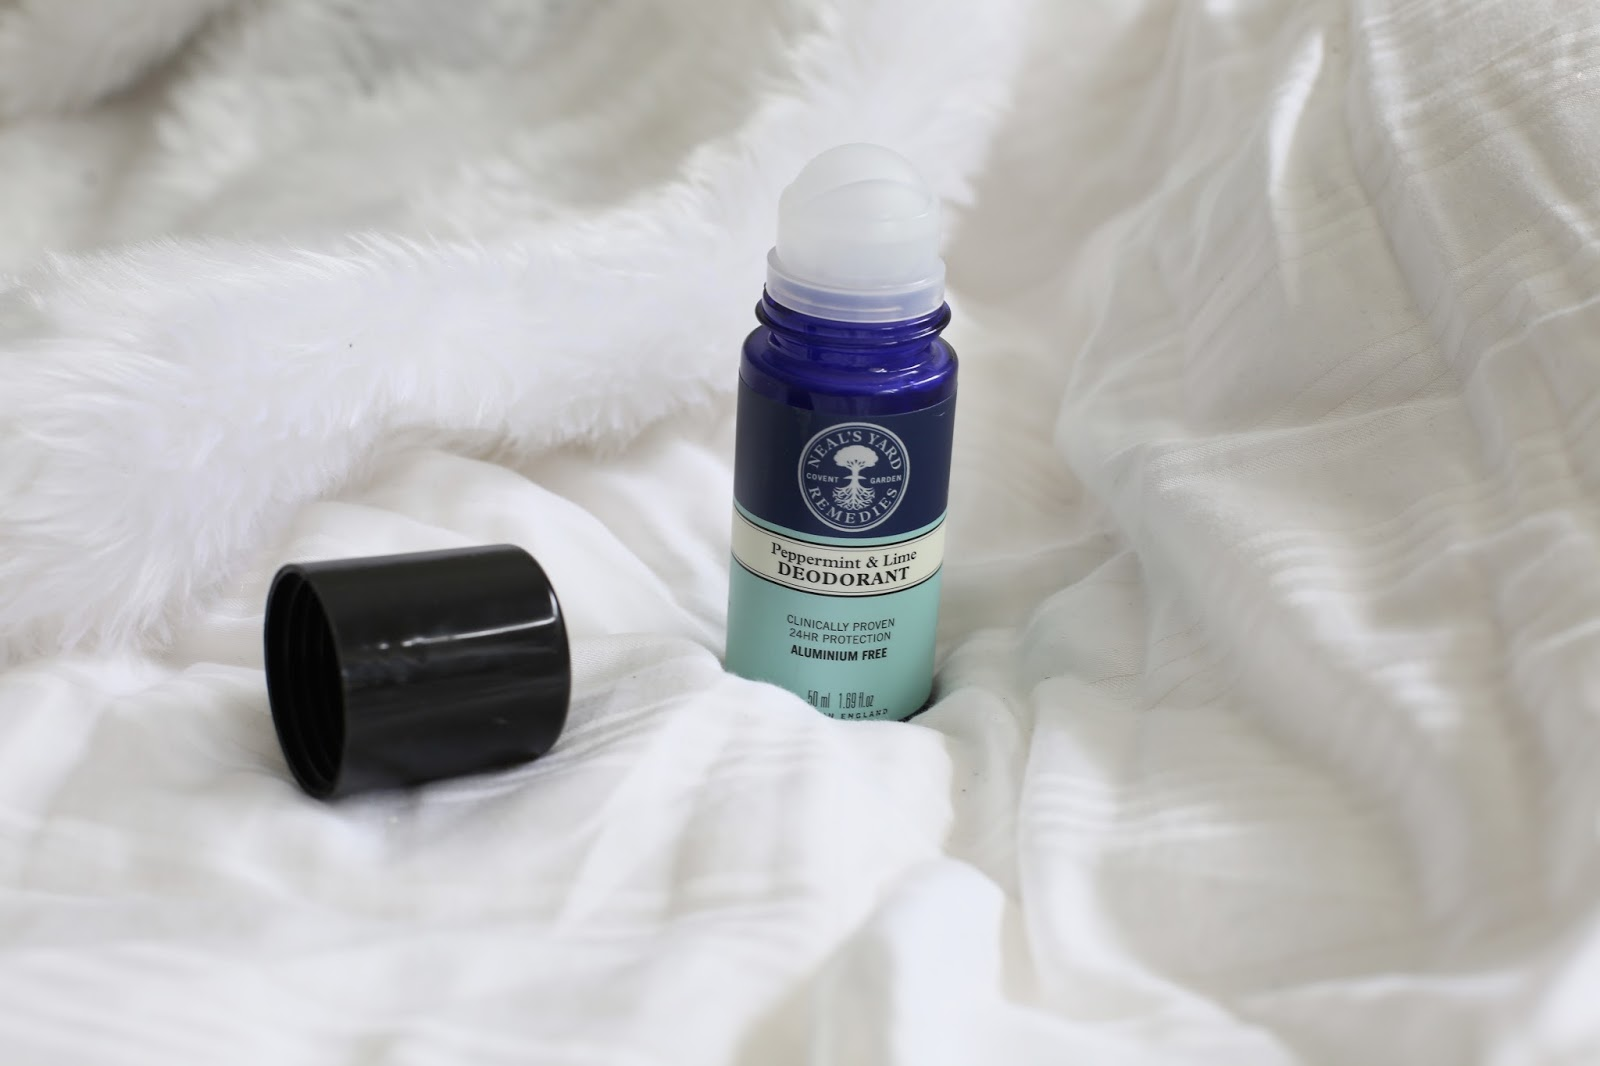 neal's yard peppermint and lime deodorant